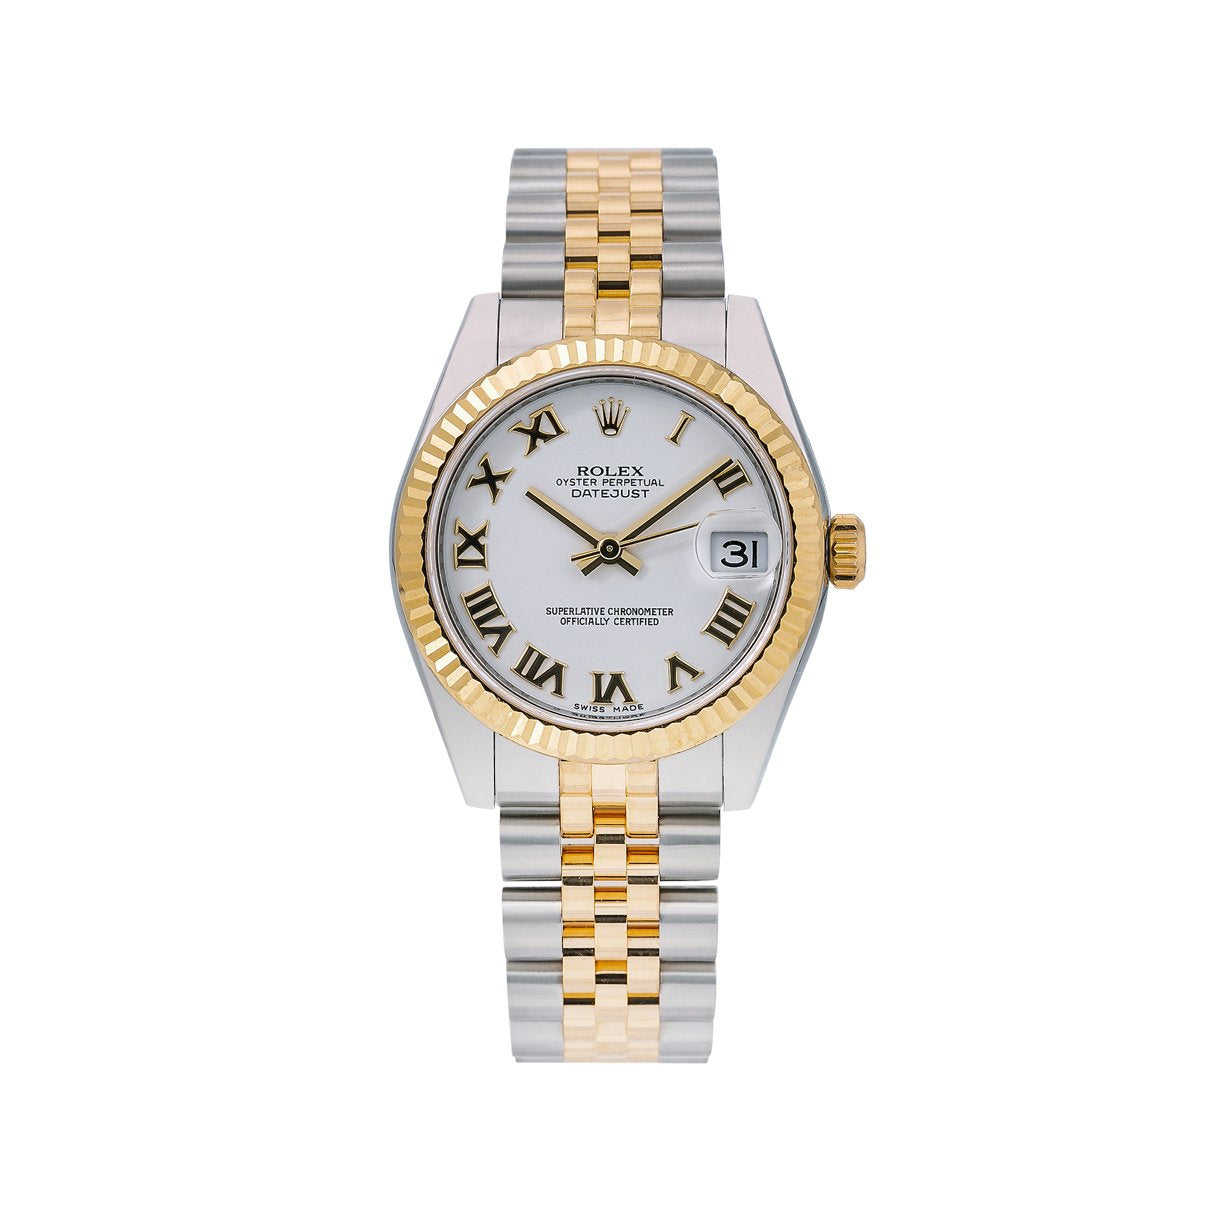 Rolex Datejust 178243 31MM White Dial With Two Tone Bracelet